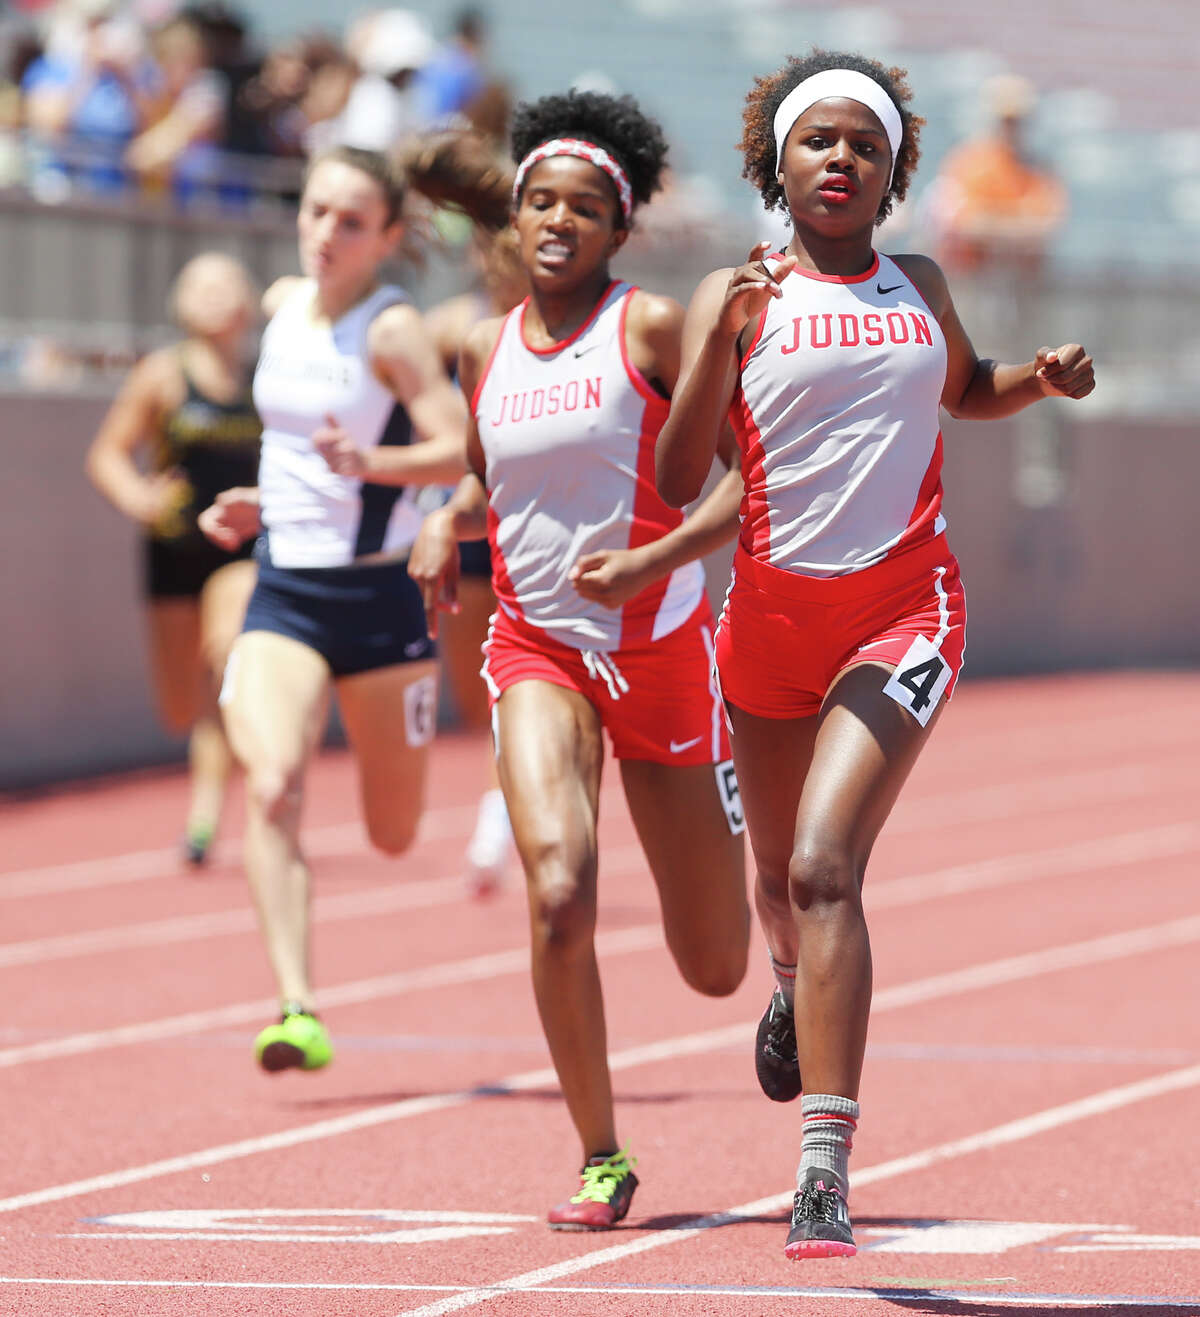 Judson's Darionne Gibson (right) beats teammate Zantori Dickerson to the finish line of the Class 6A 400-meter dash during the Region IV-5A and Region IV-6A track and field meet at Alamo Stadium on May 2, 2015. Gibson won the event with a time of 55.50 seconds. Dickerson finished second with 55.98 seconds.